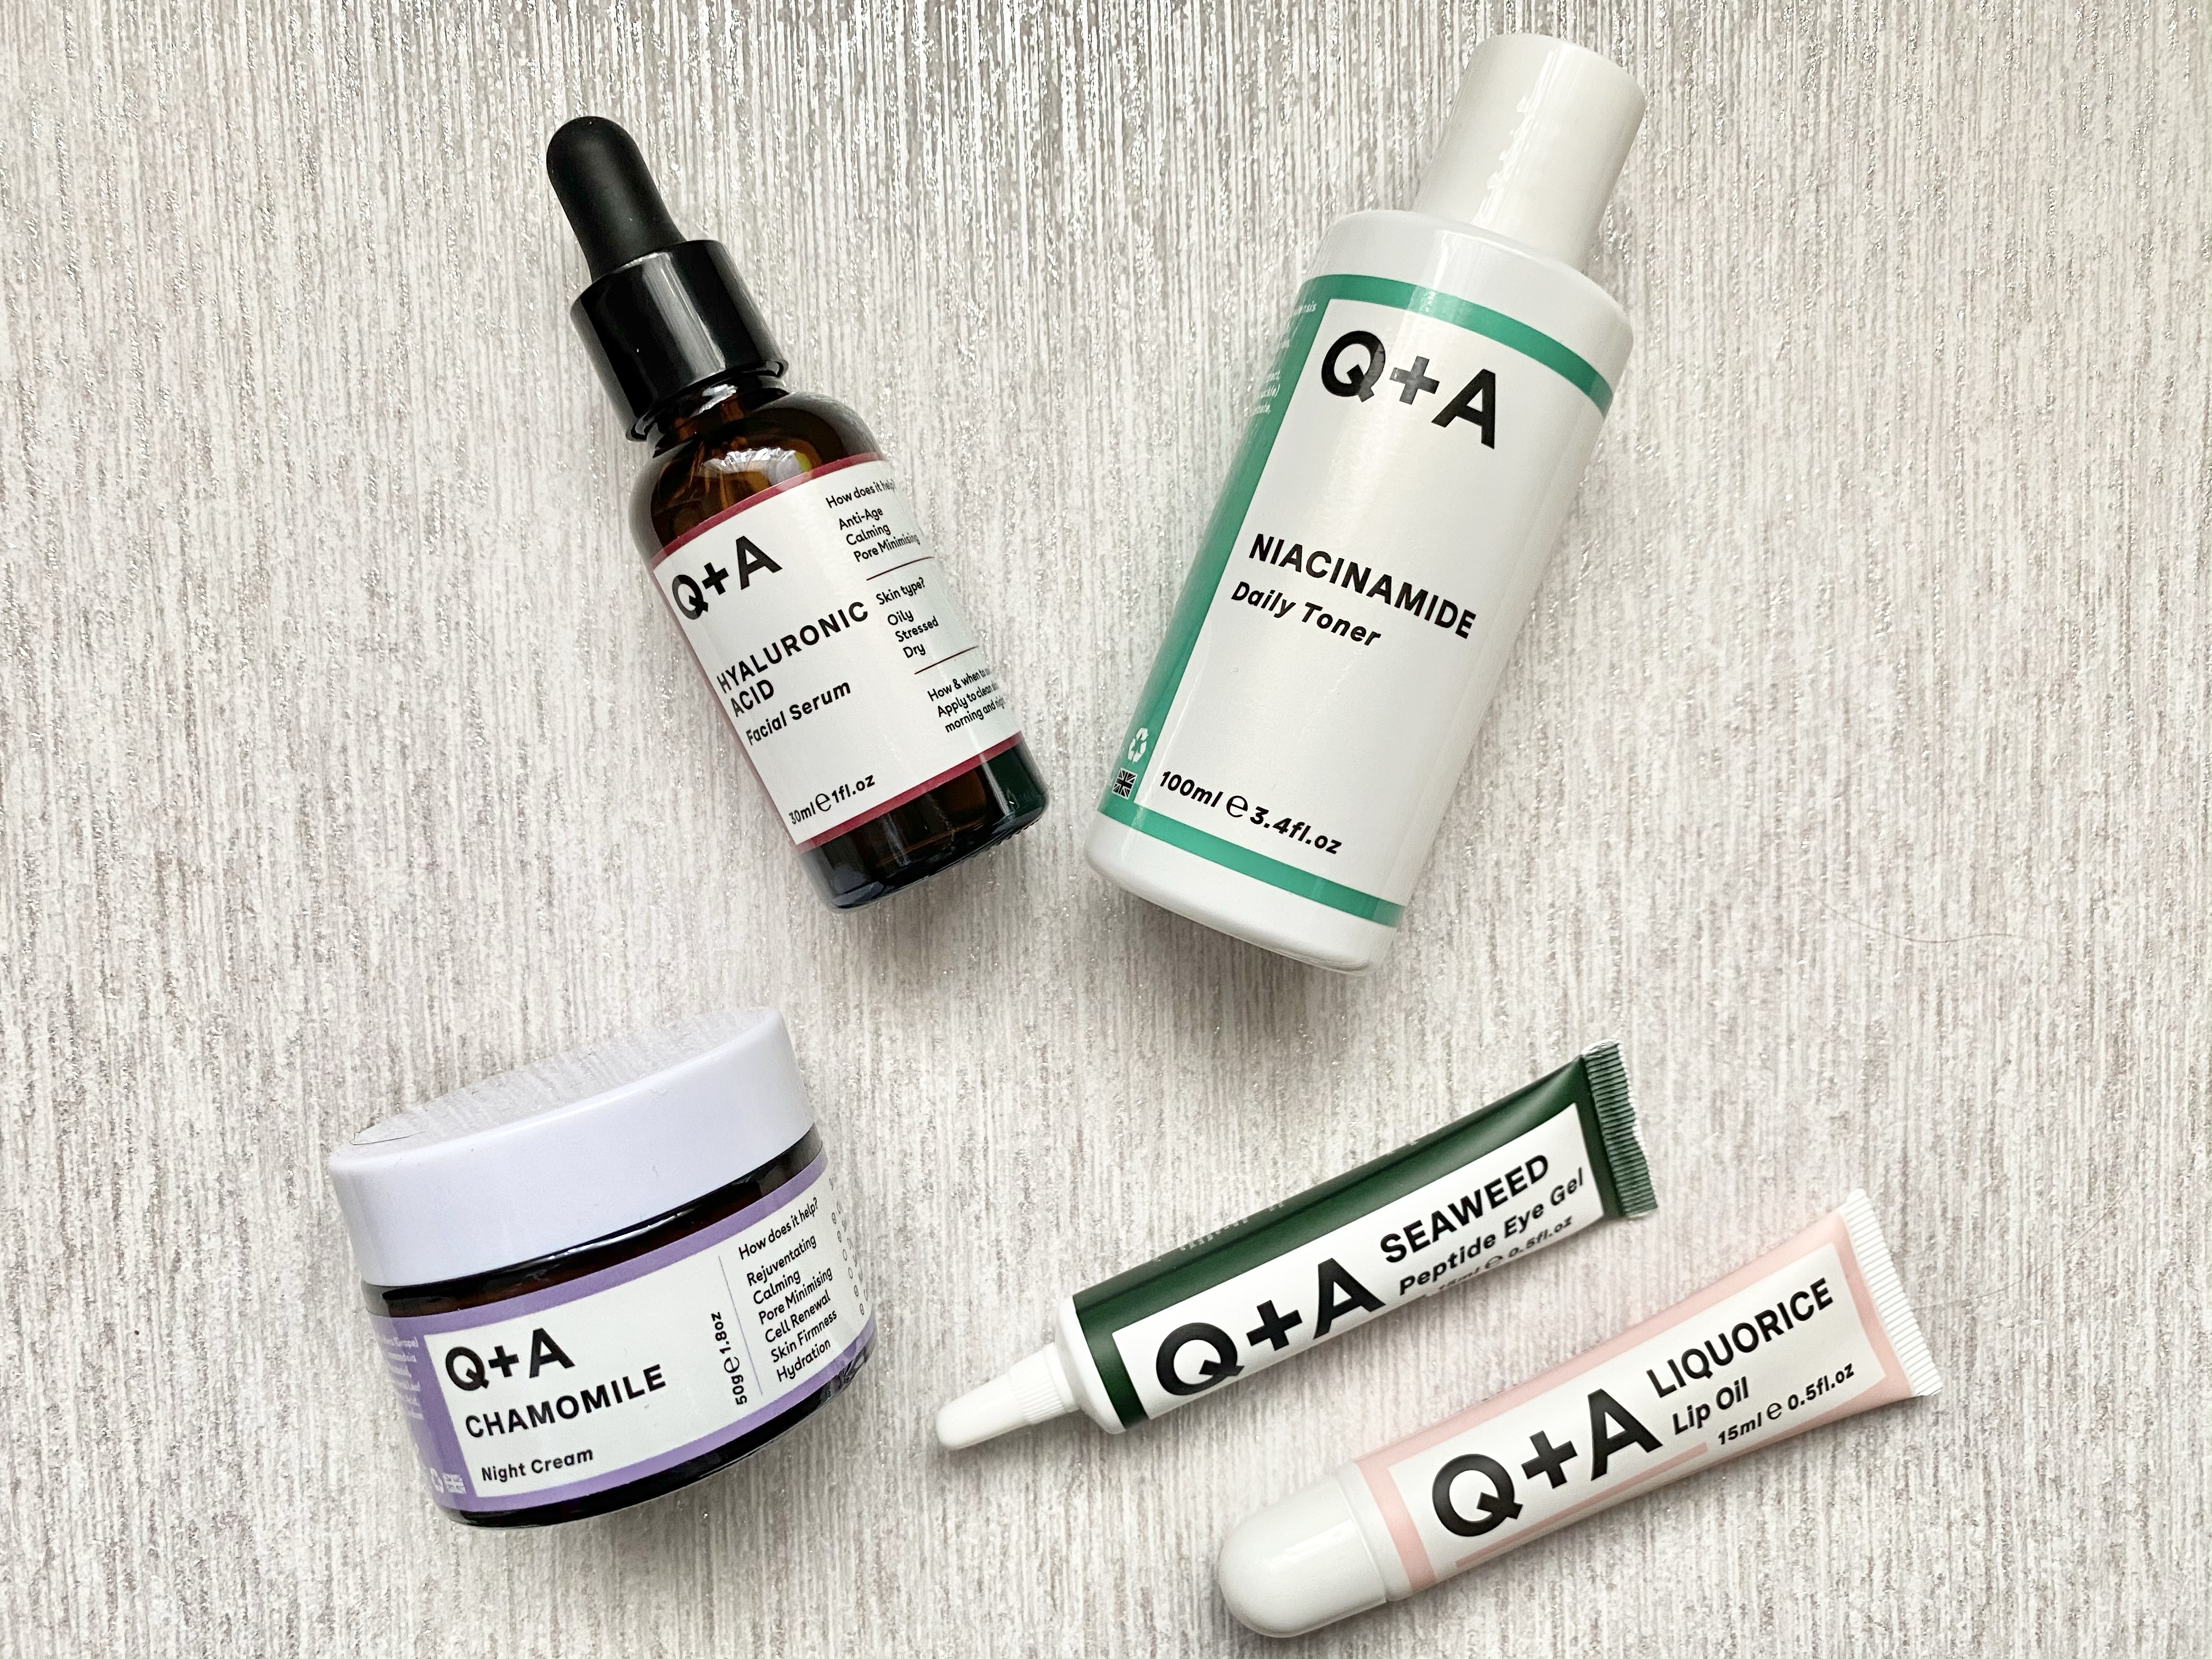 Q+A skin eye gel, lip oil, daily toner, hyaluronic acid facial serum and night cream